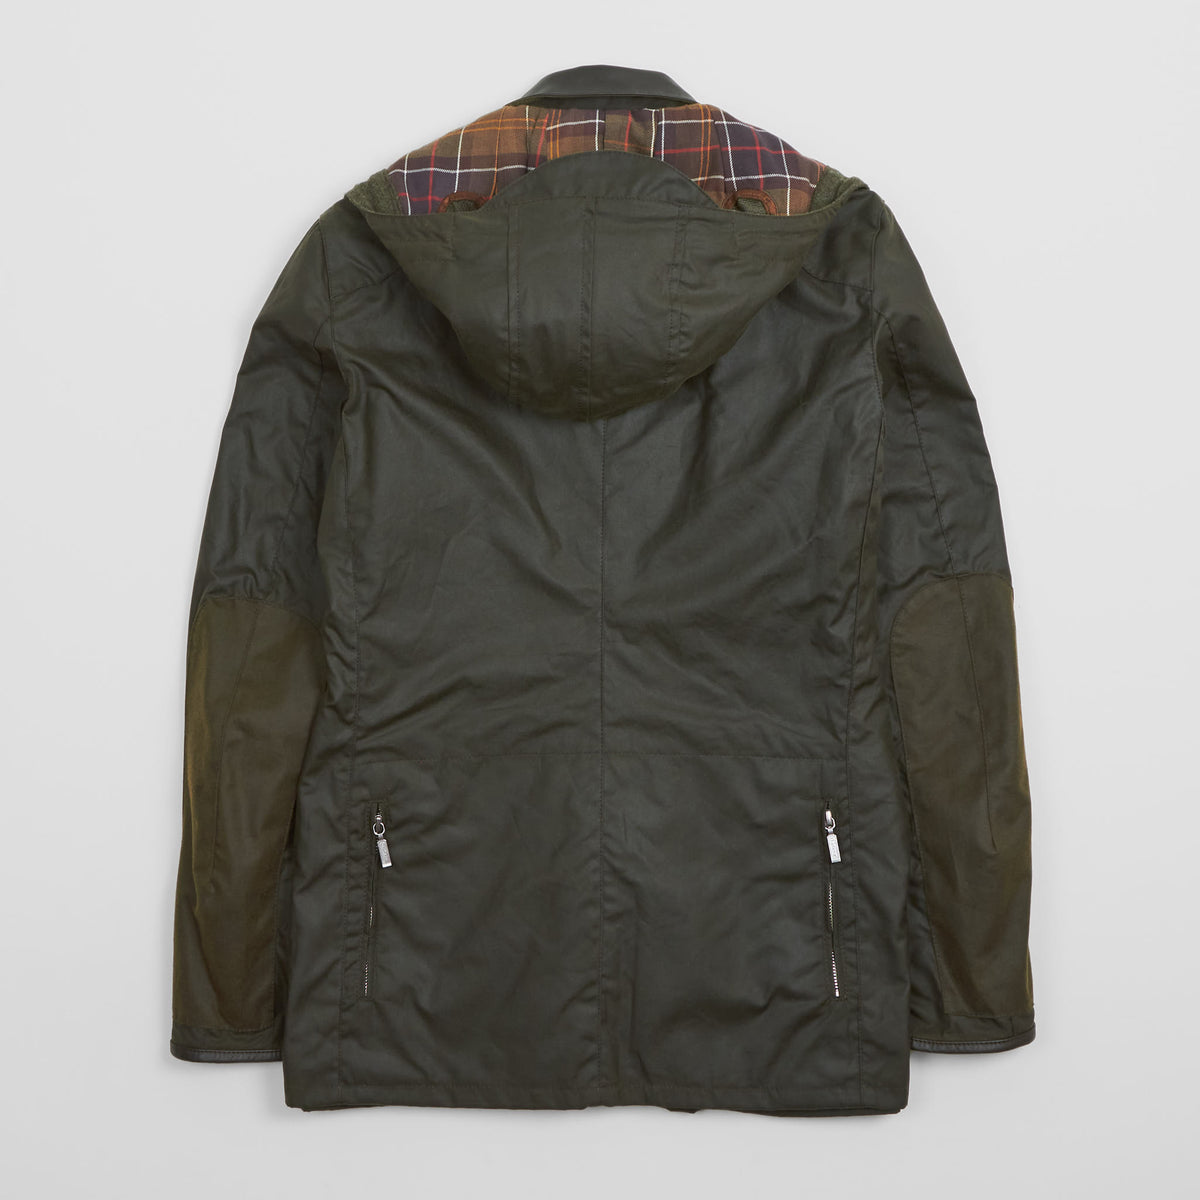 Barbour Jacket Gold Standart